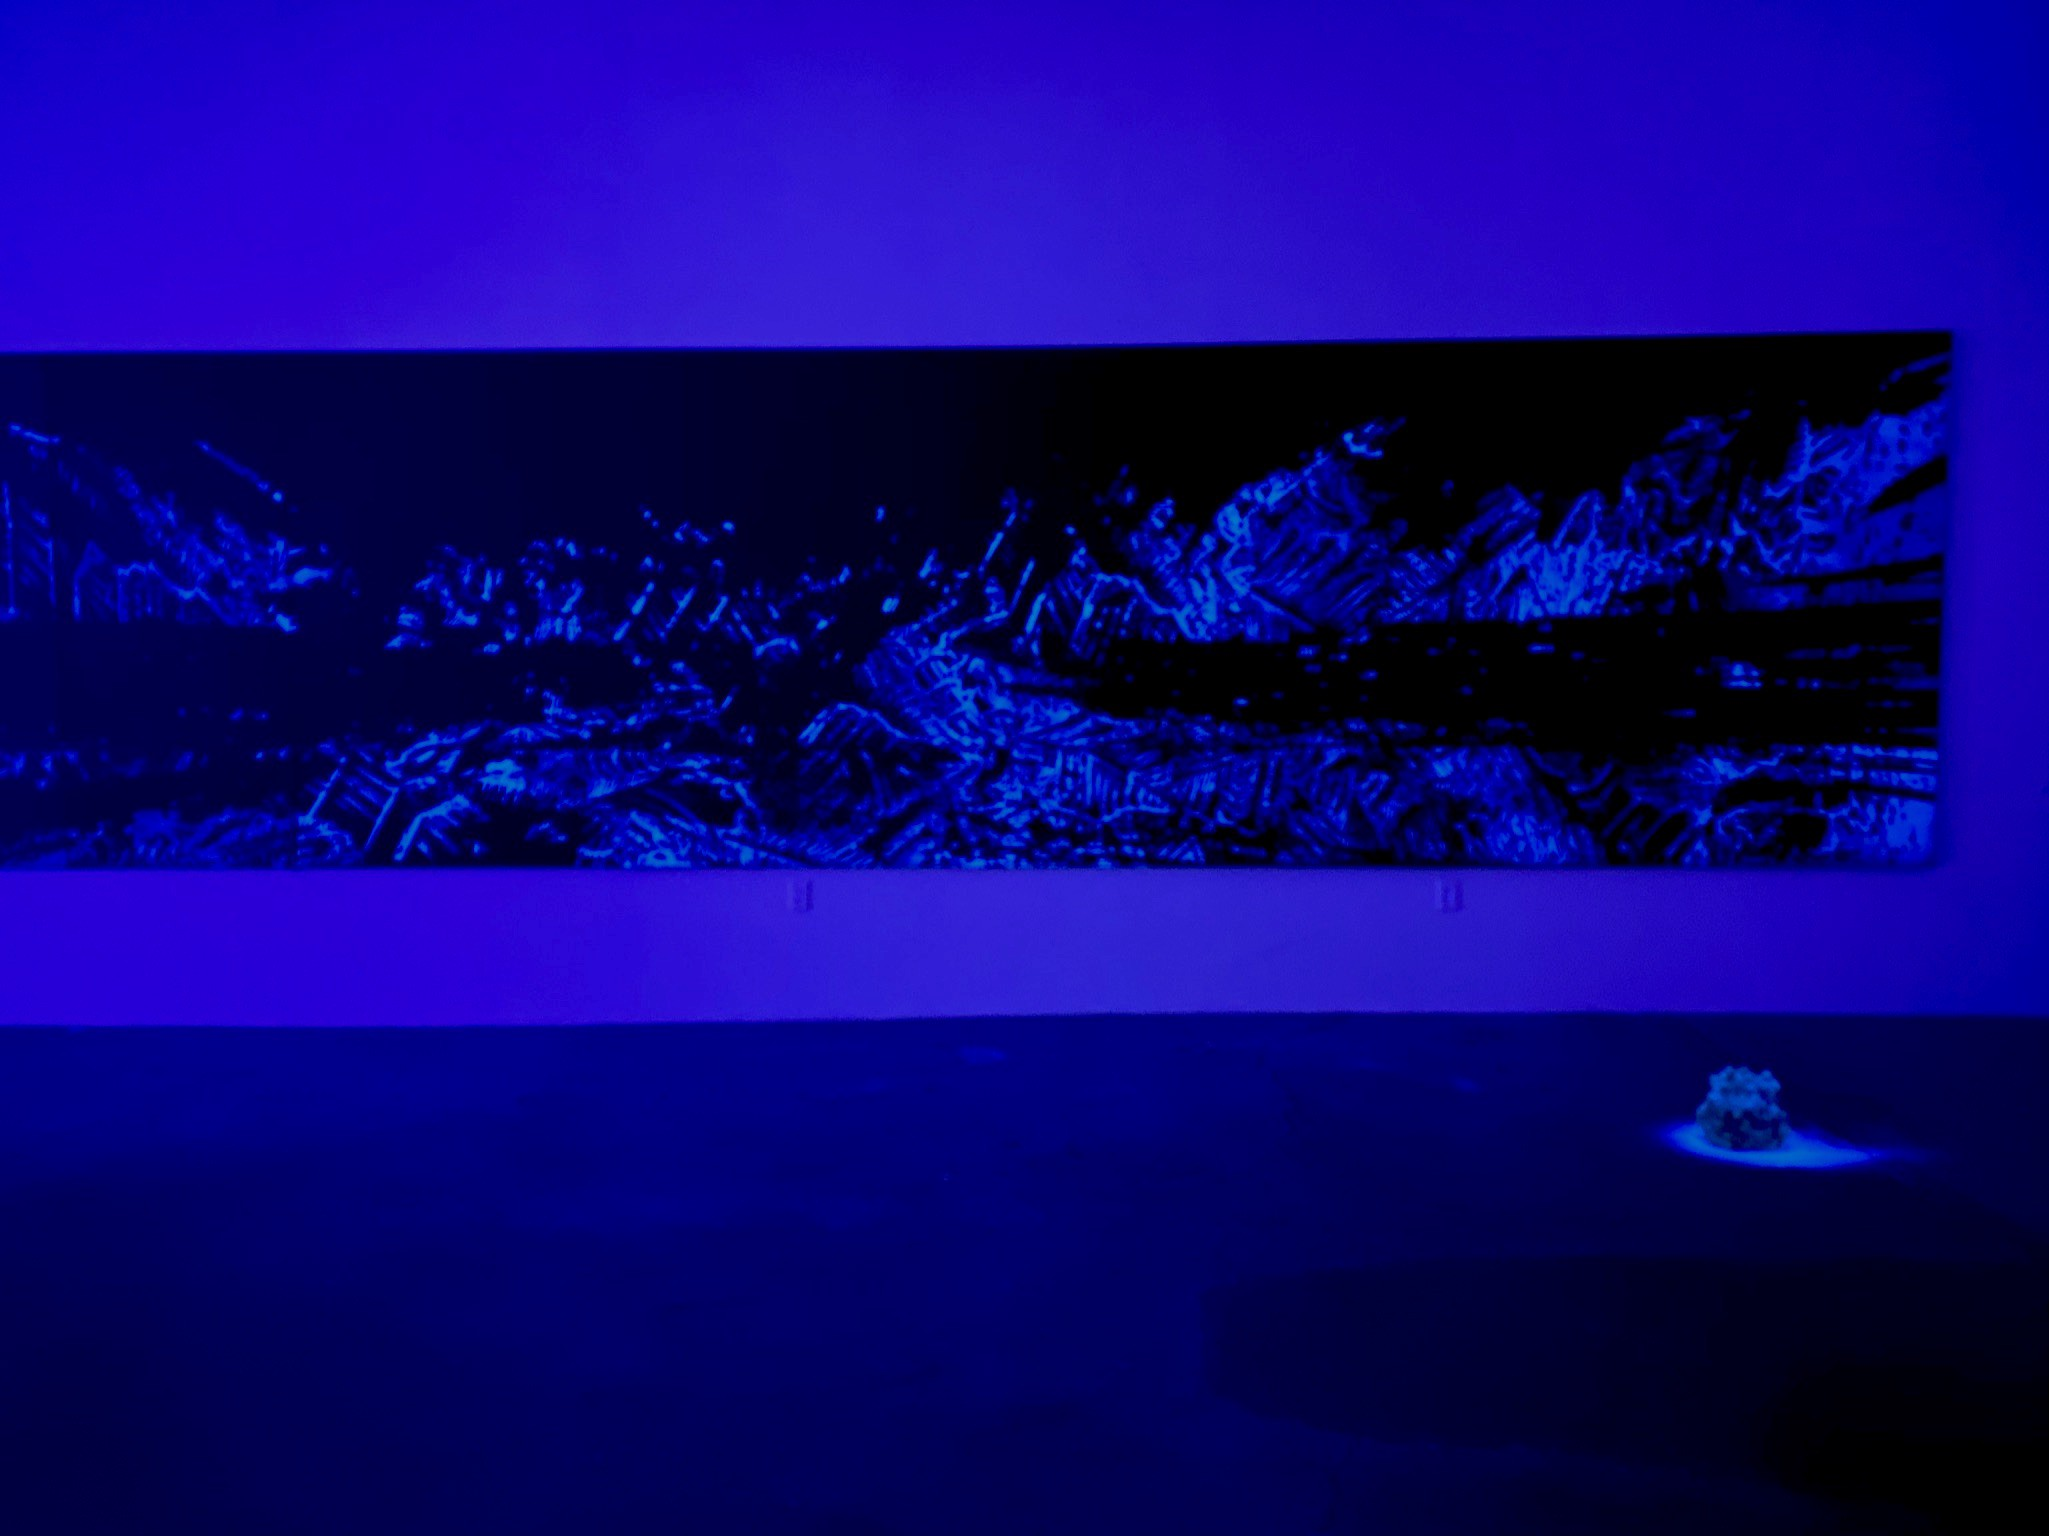 Light art from EDGE OF LIGHT. The installation looks to nature as a means to express humanity's interconnectedness.